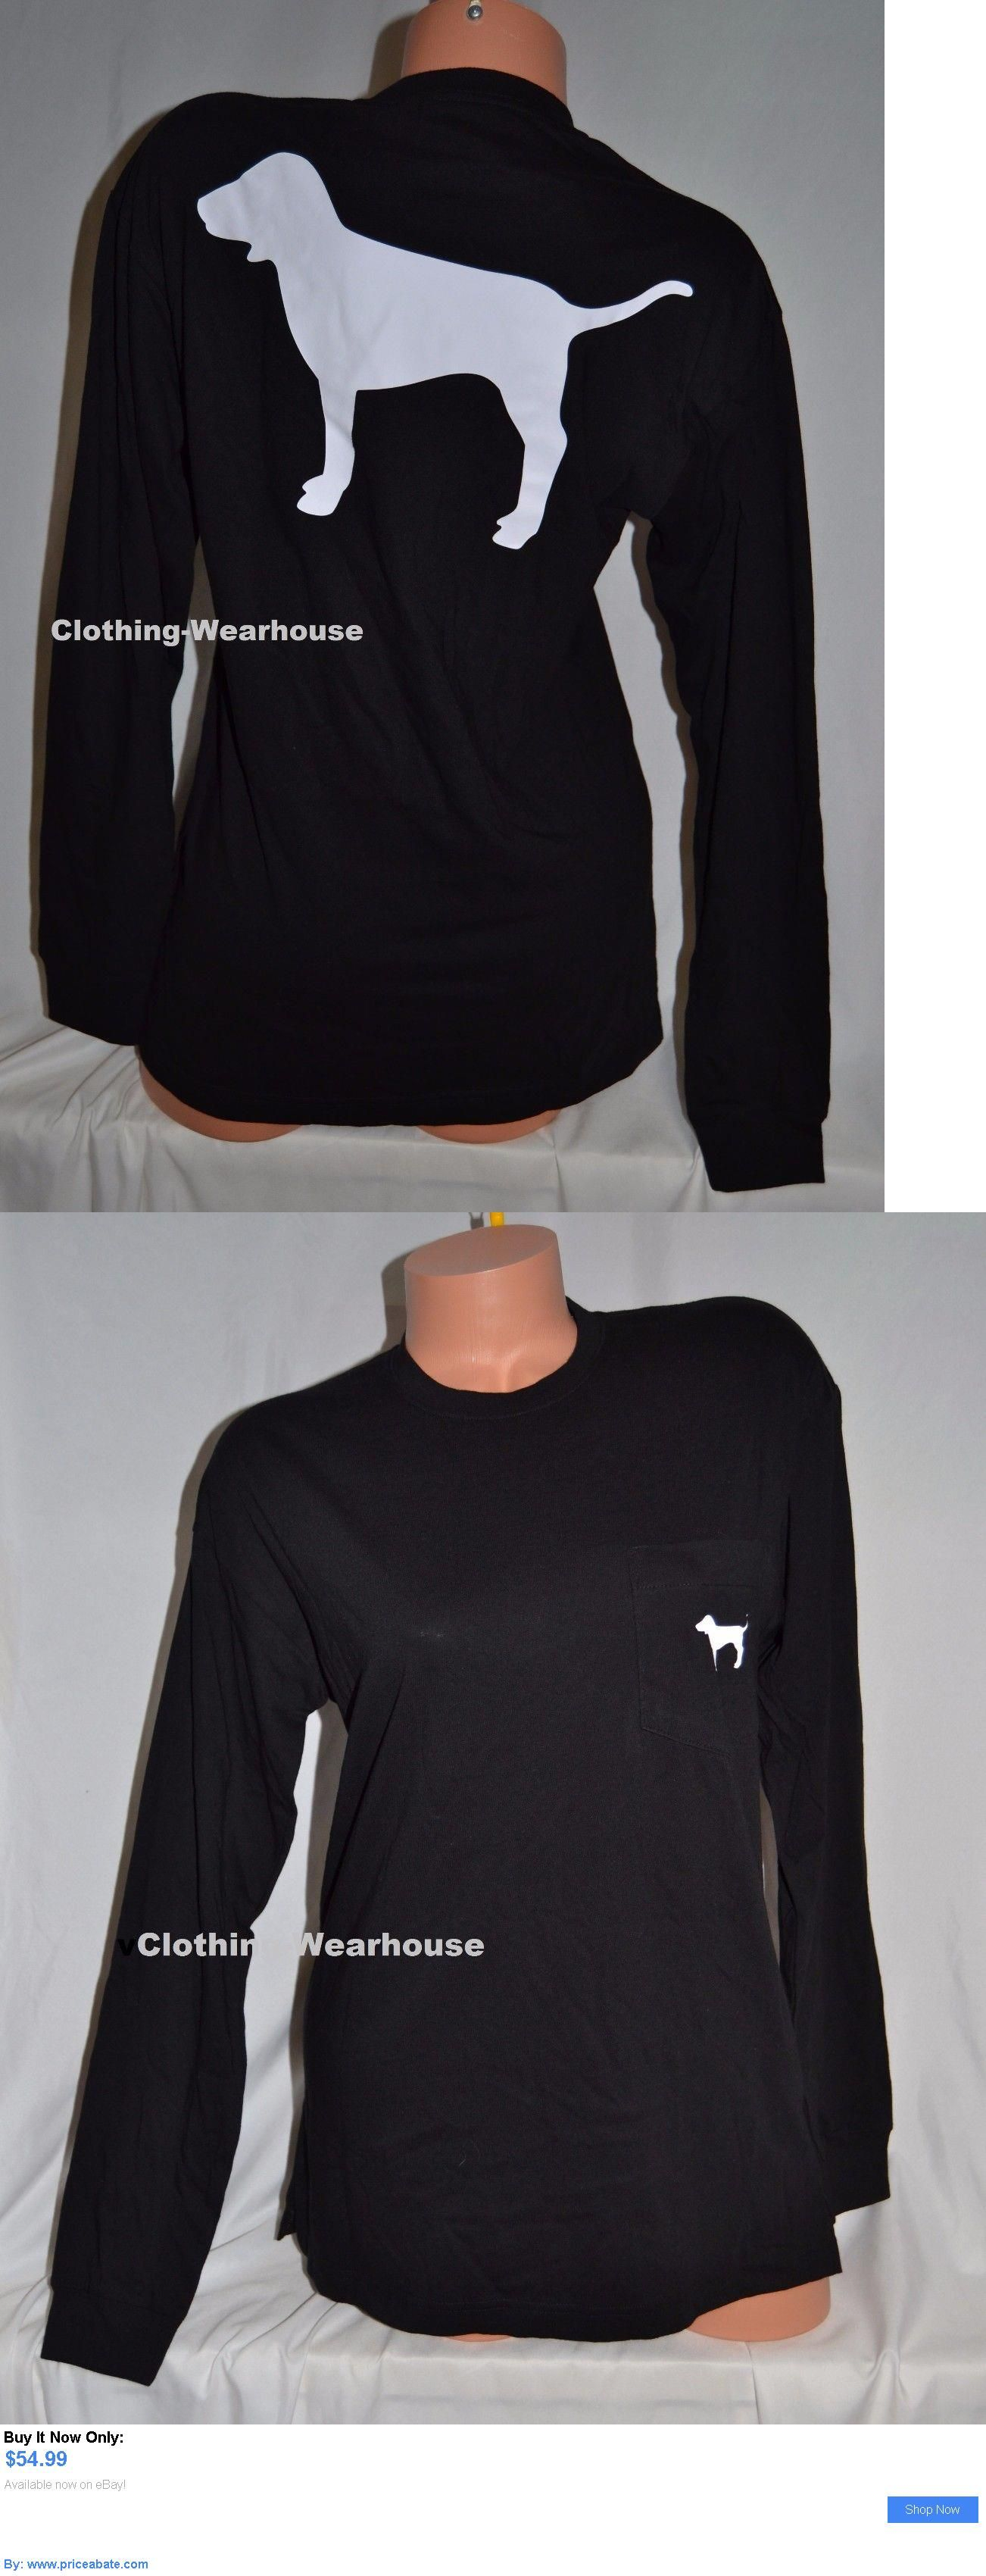 Black dog t shirt ebay - Women T Shirts Victorias Secret Pink Black Dog Logo Campus Long Sleeve Pocket Tee Shirt